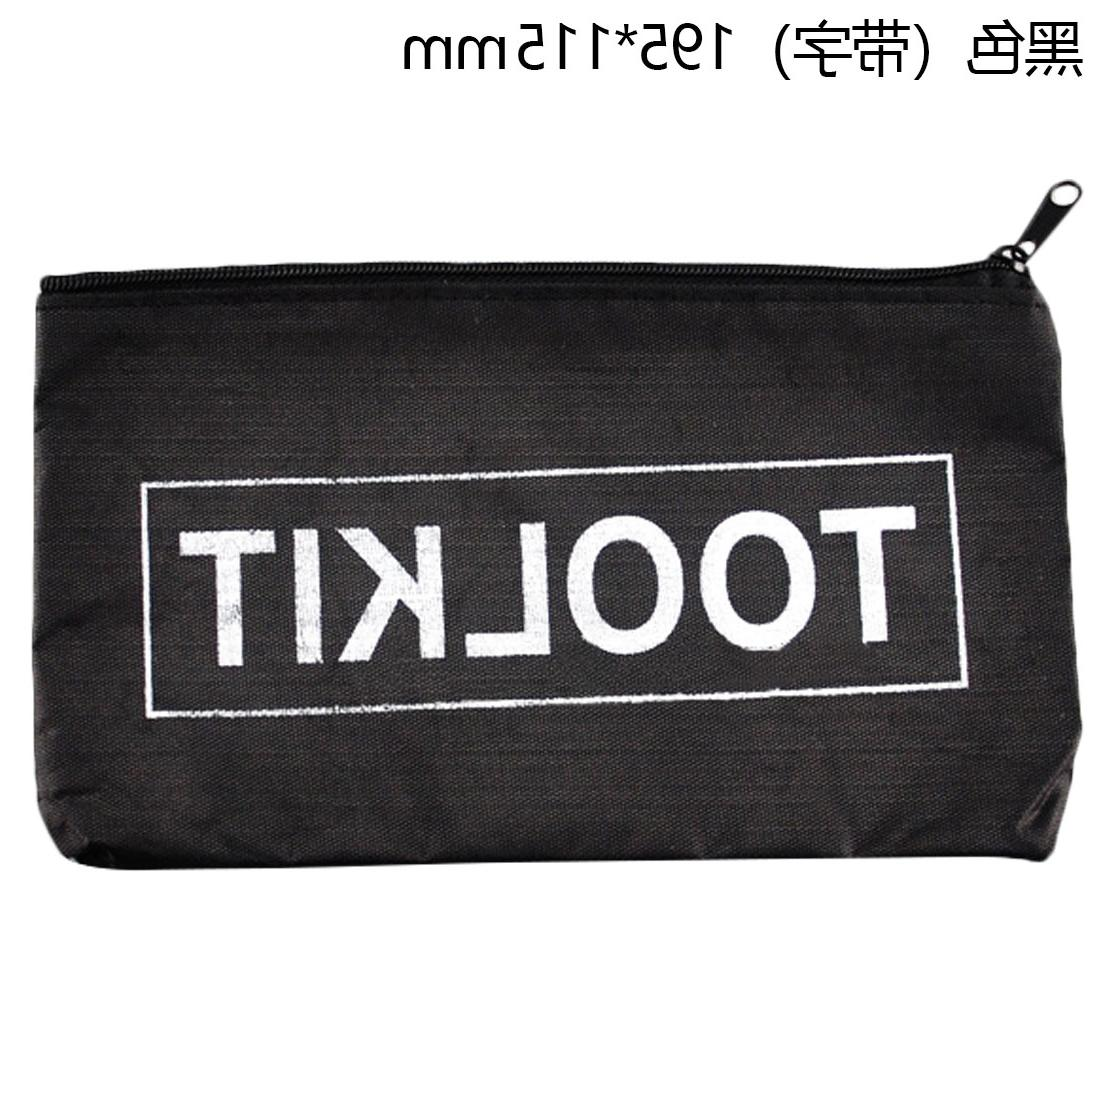 Waterproof Oxford Cloth <font><b>Tools</b></font> Set <font><b>Bag</b></font> Instrument Pouch